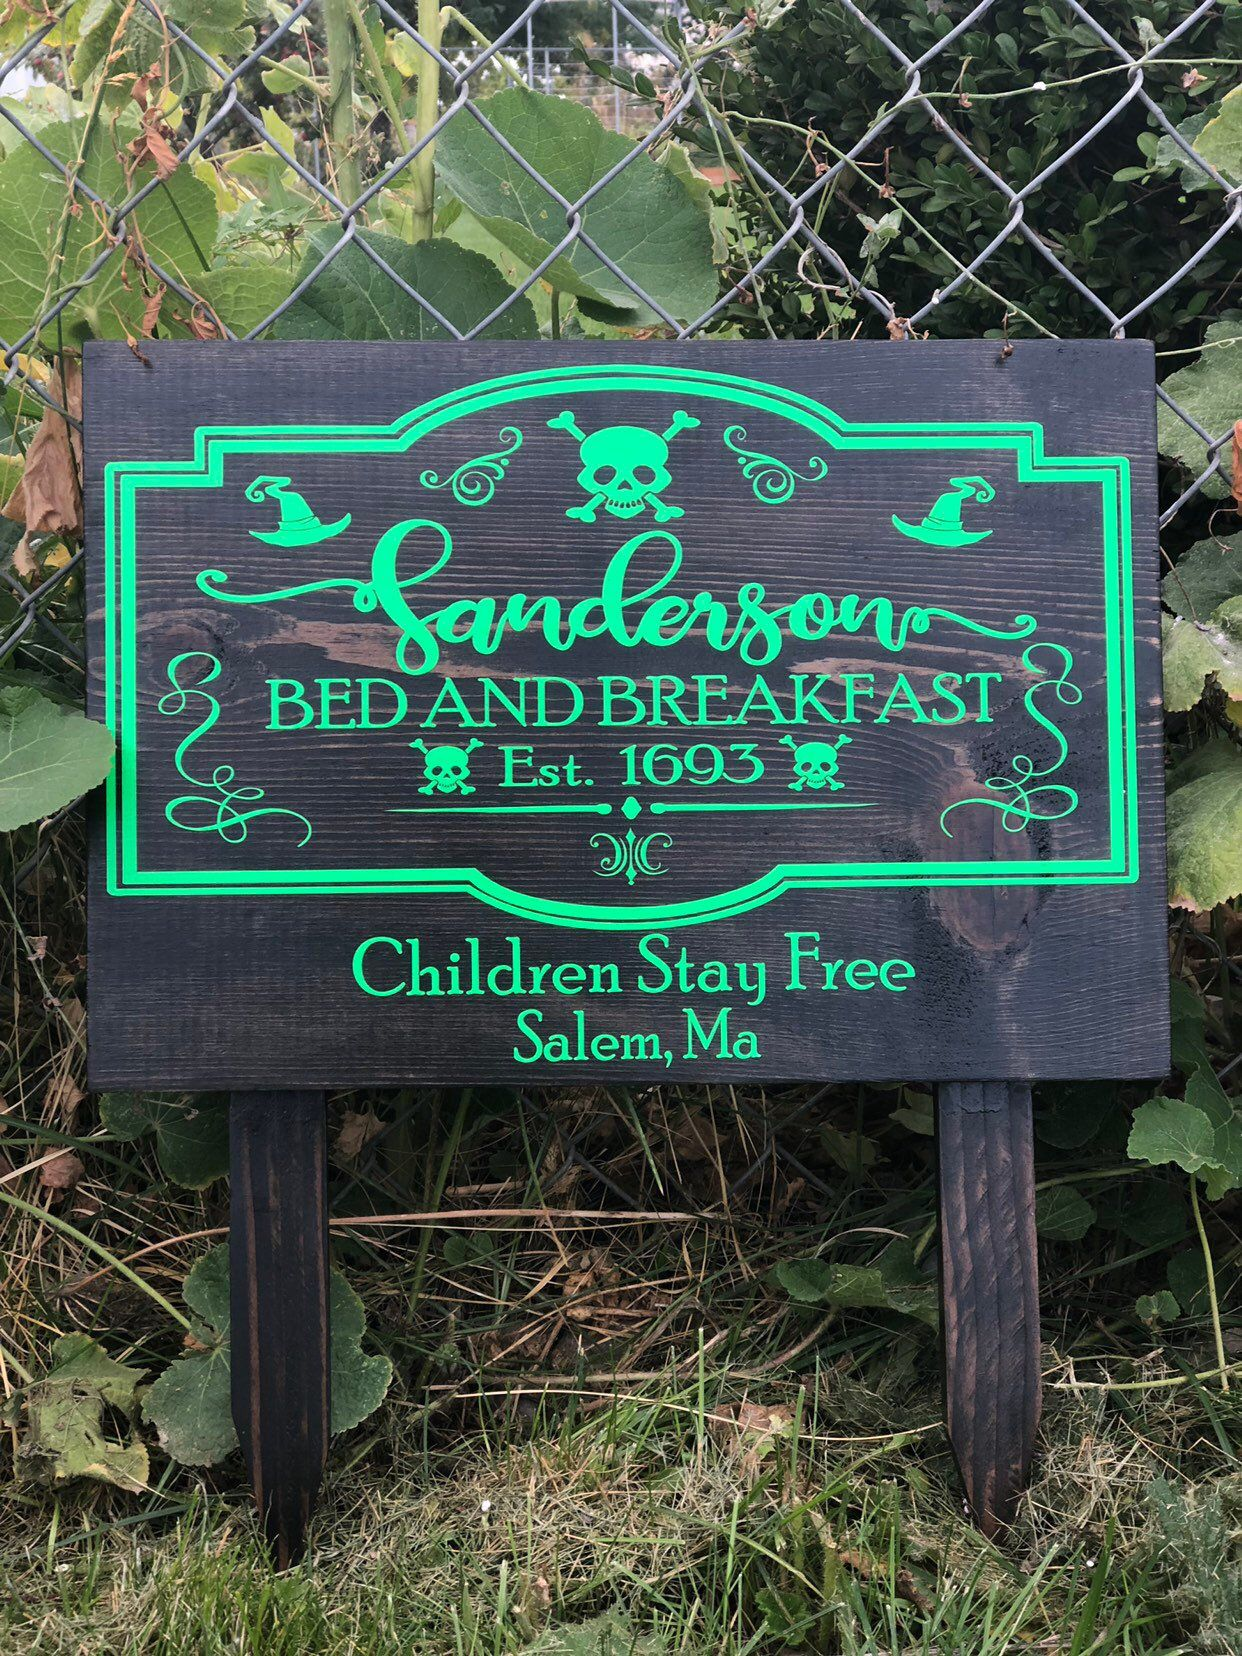 Sanderson Bed and Breakfast Est. 1693 Yard Sign for